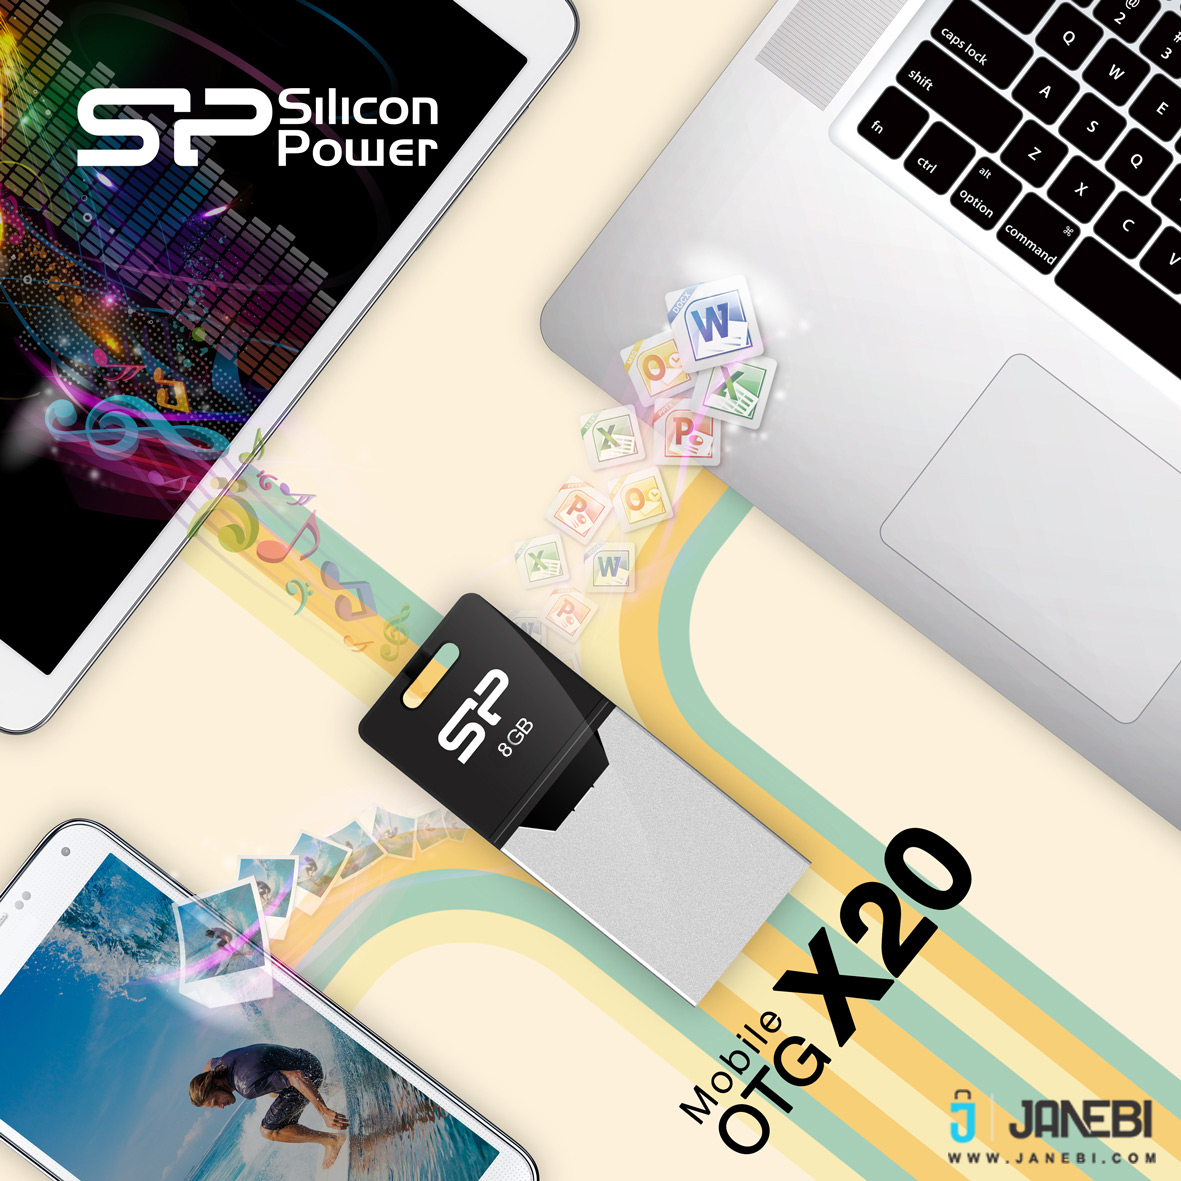 فلش مموری سیلیکون پاور Silicon Power Mobile X20 USB OTG Flash Drive 32G